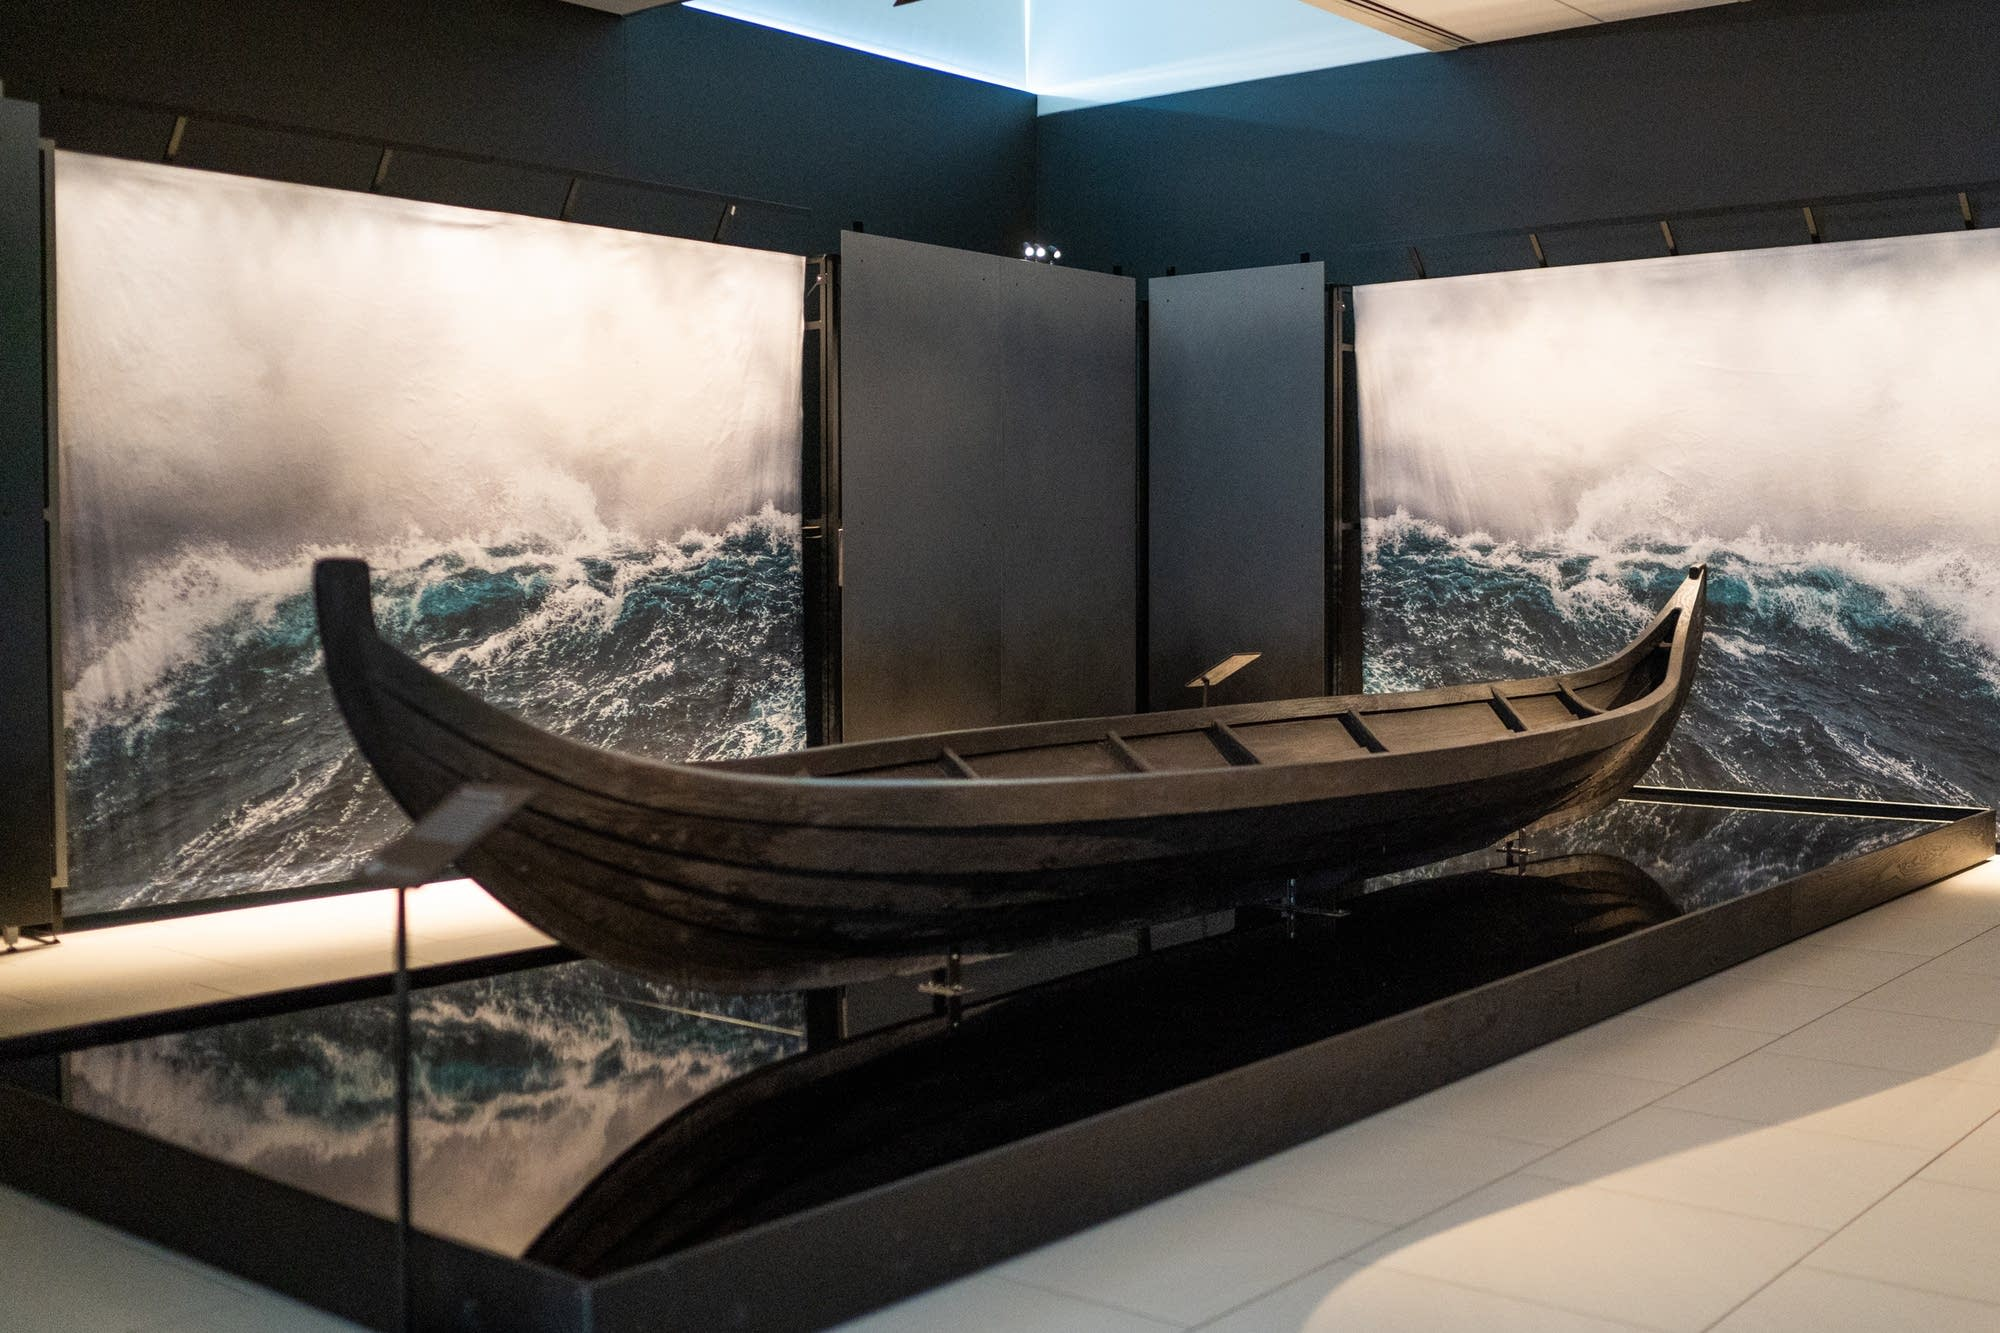 A replica of a Viking burial boat sits on display.